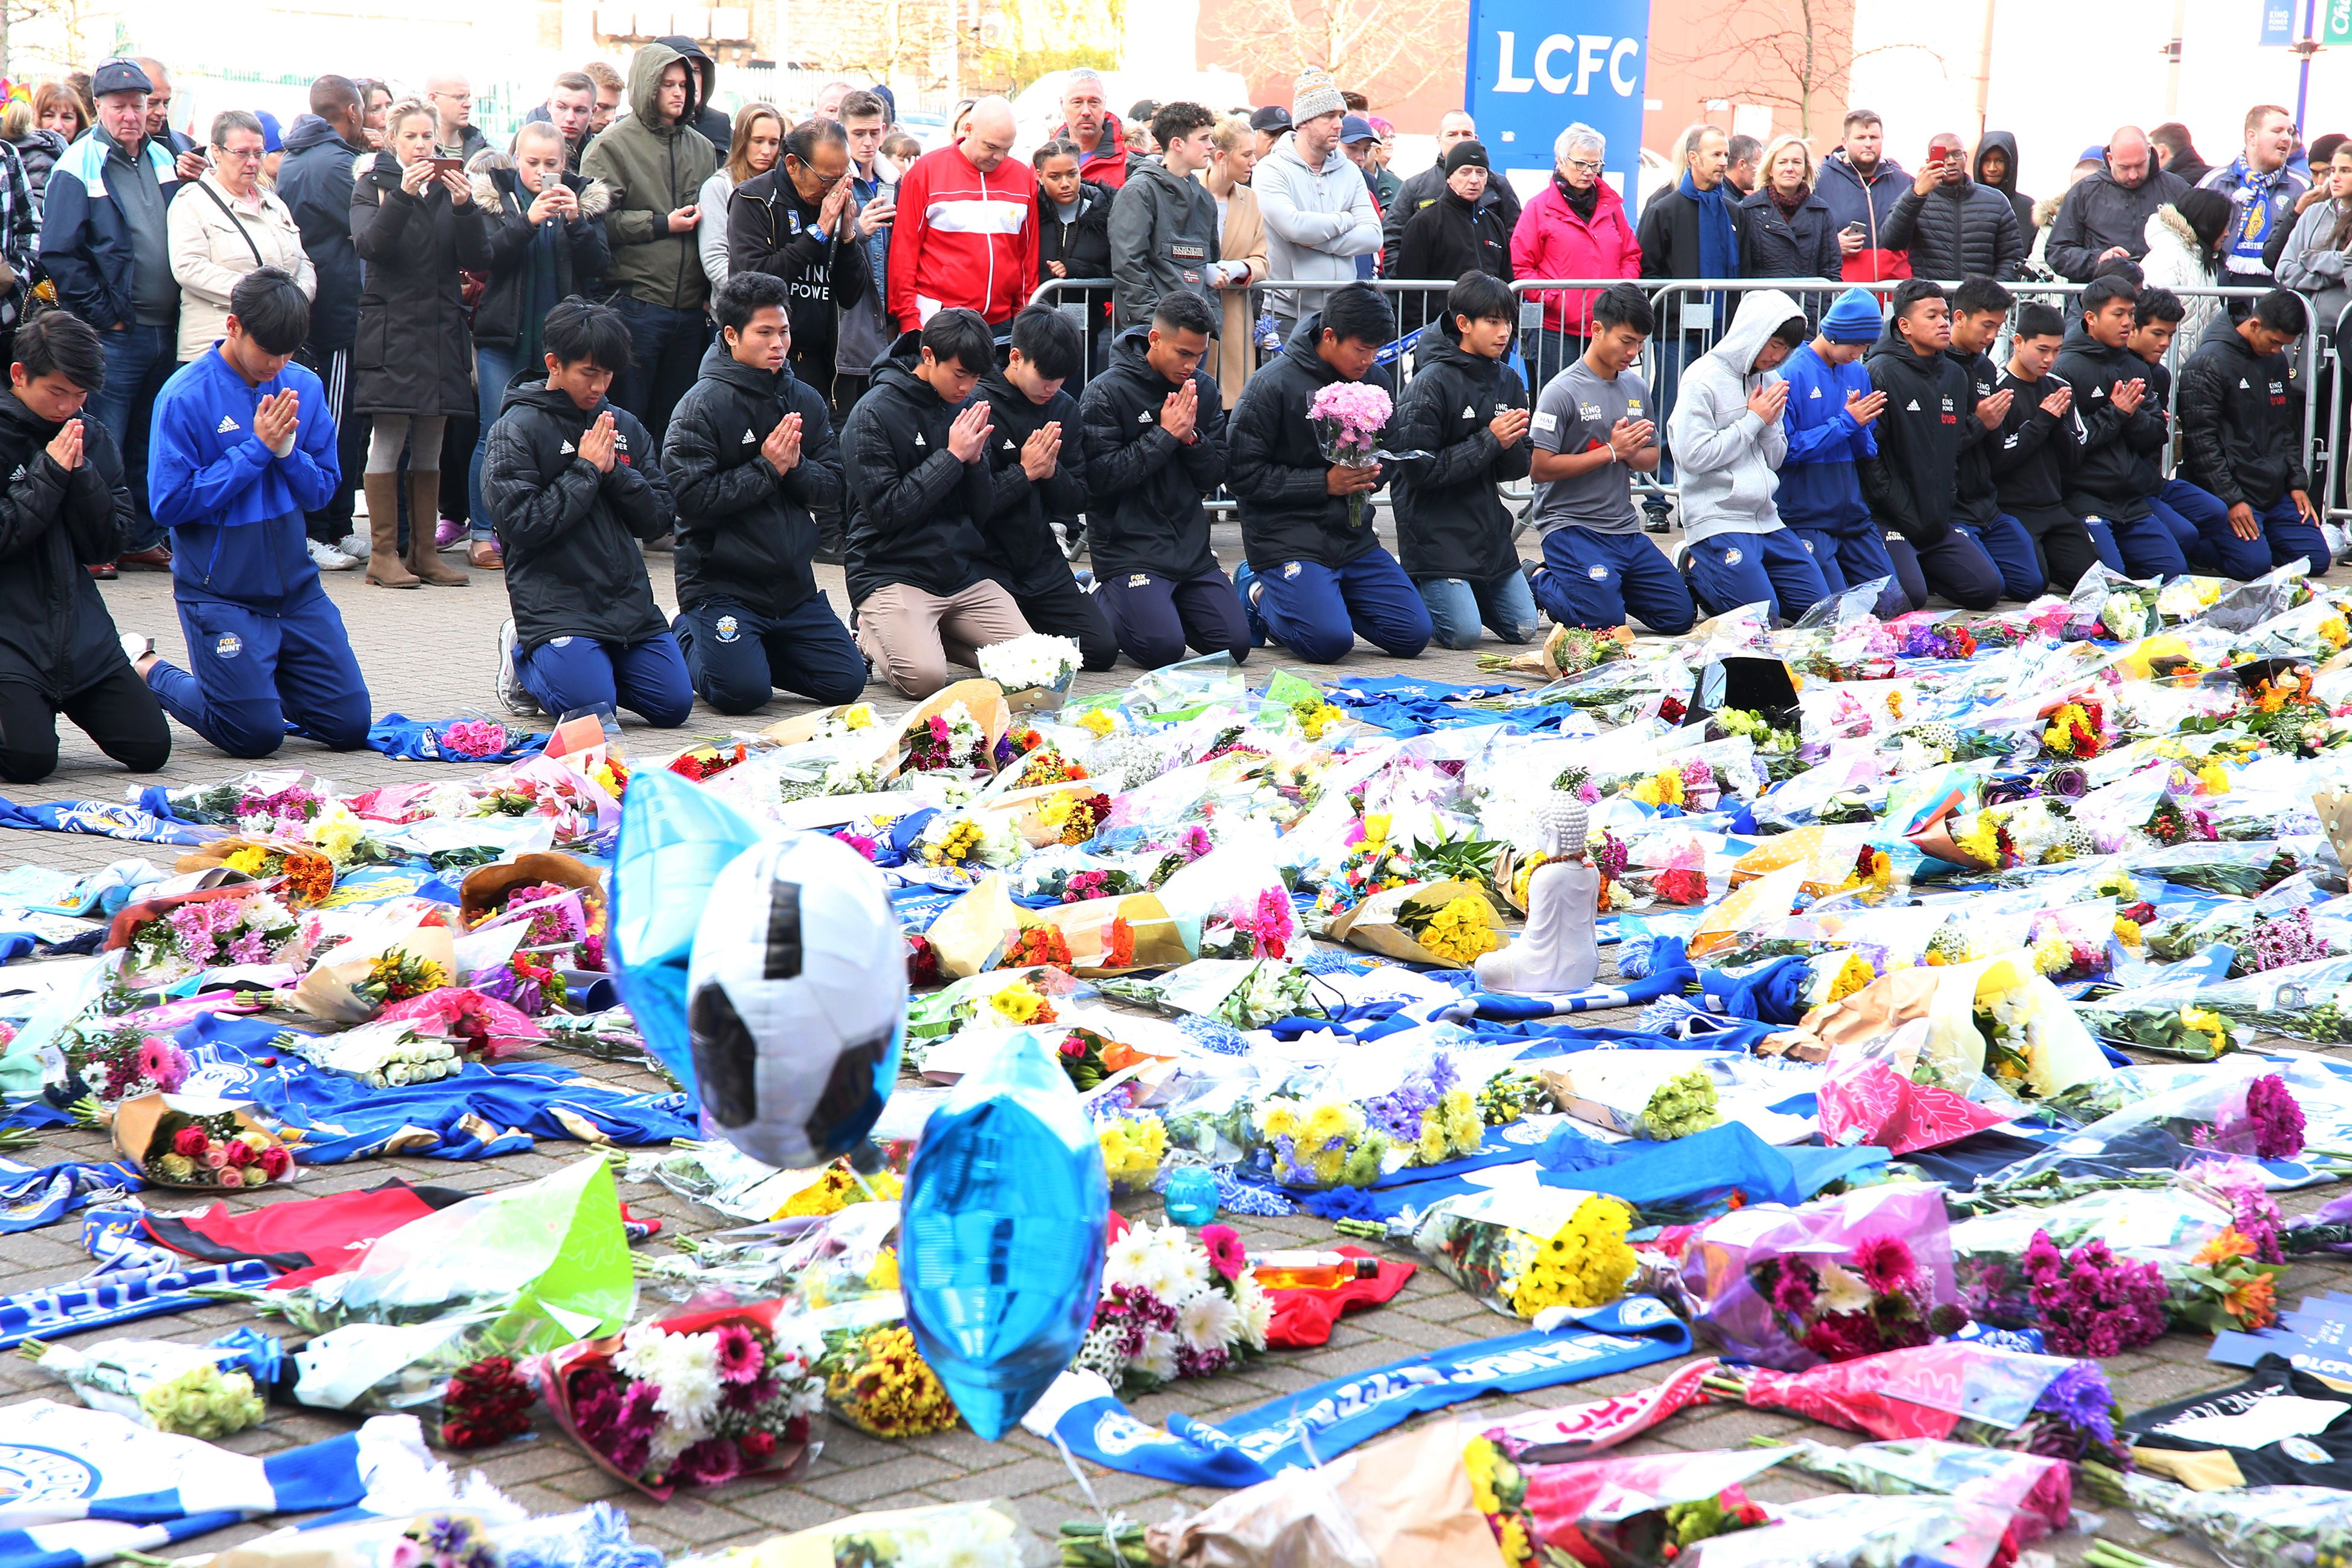 People pay respects outside the King Power stadium in Leicester, U.K on Oct. 28, 2018.